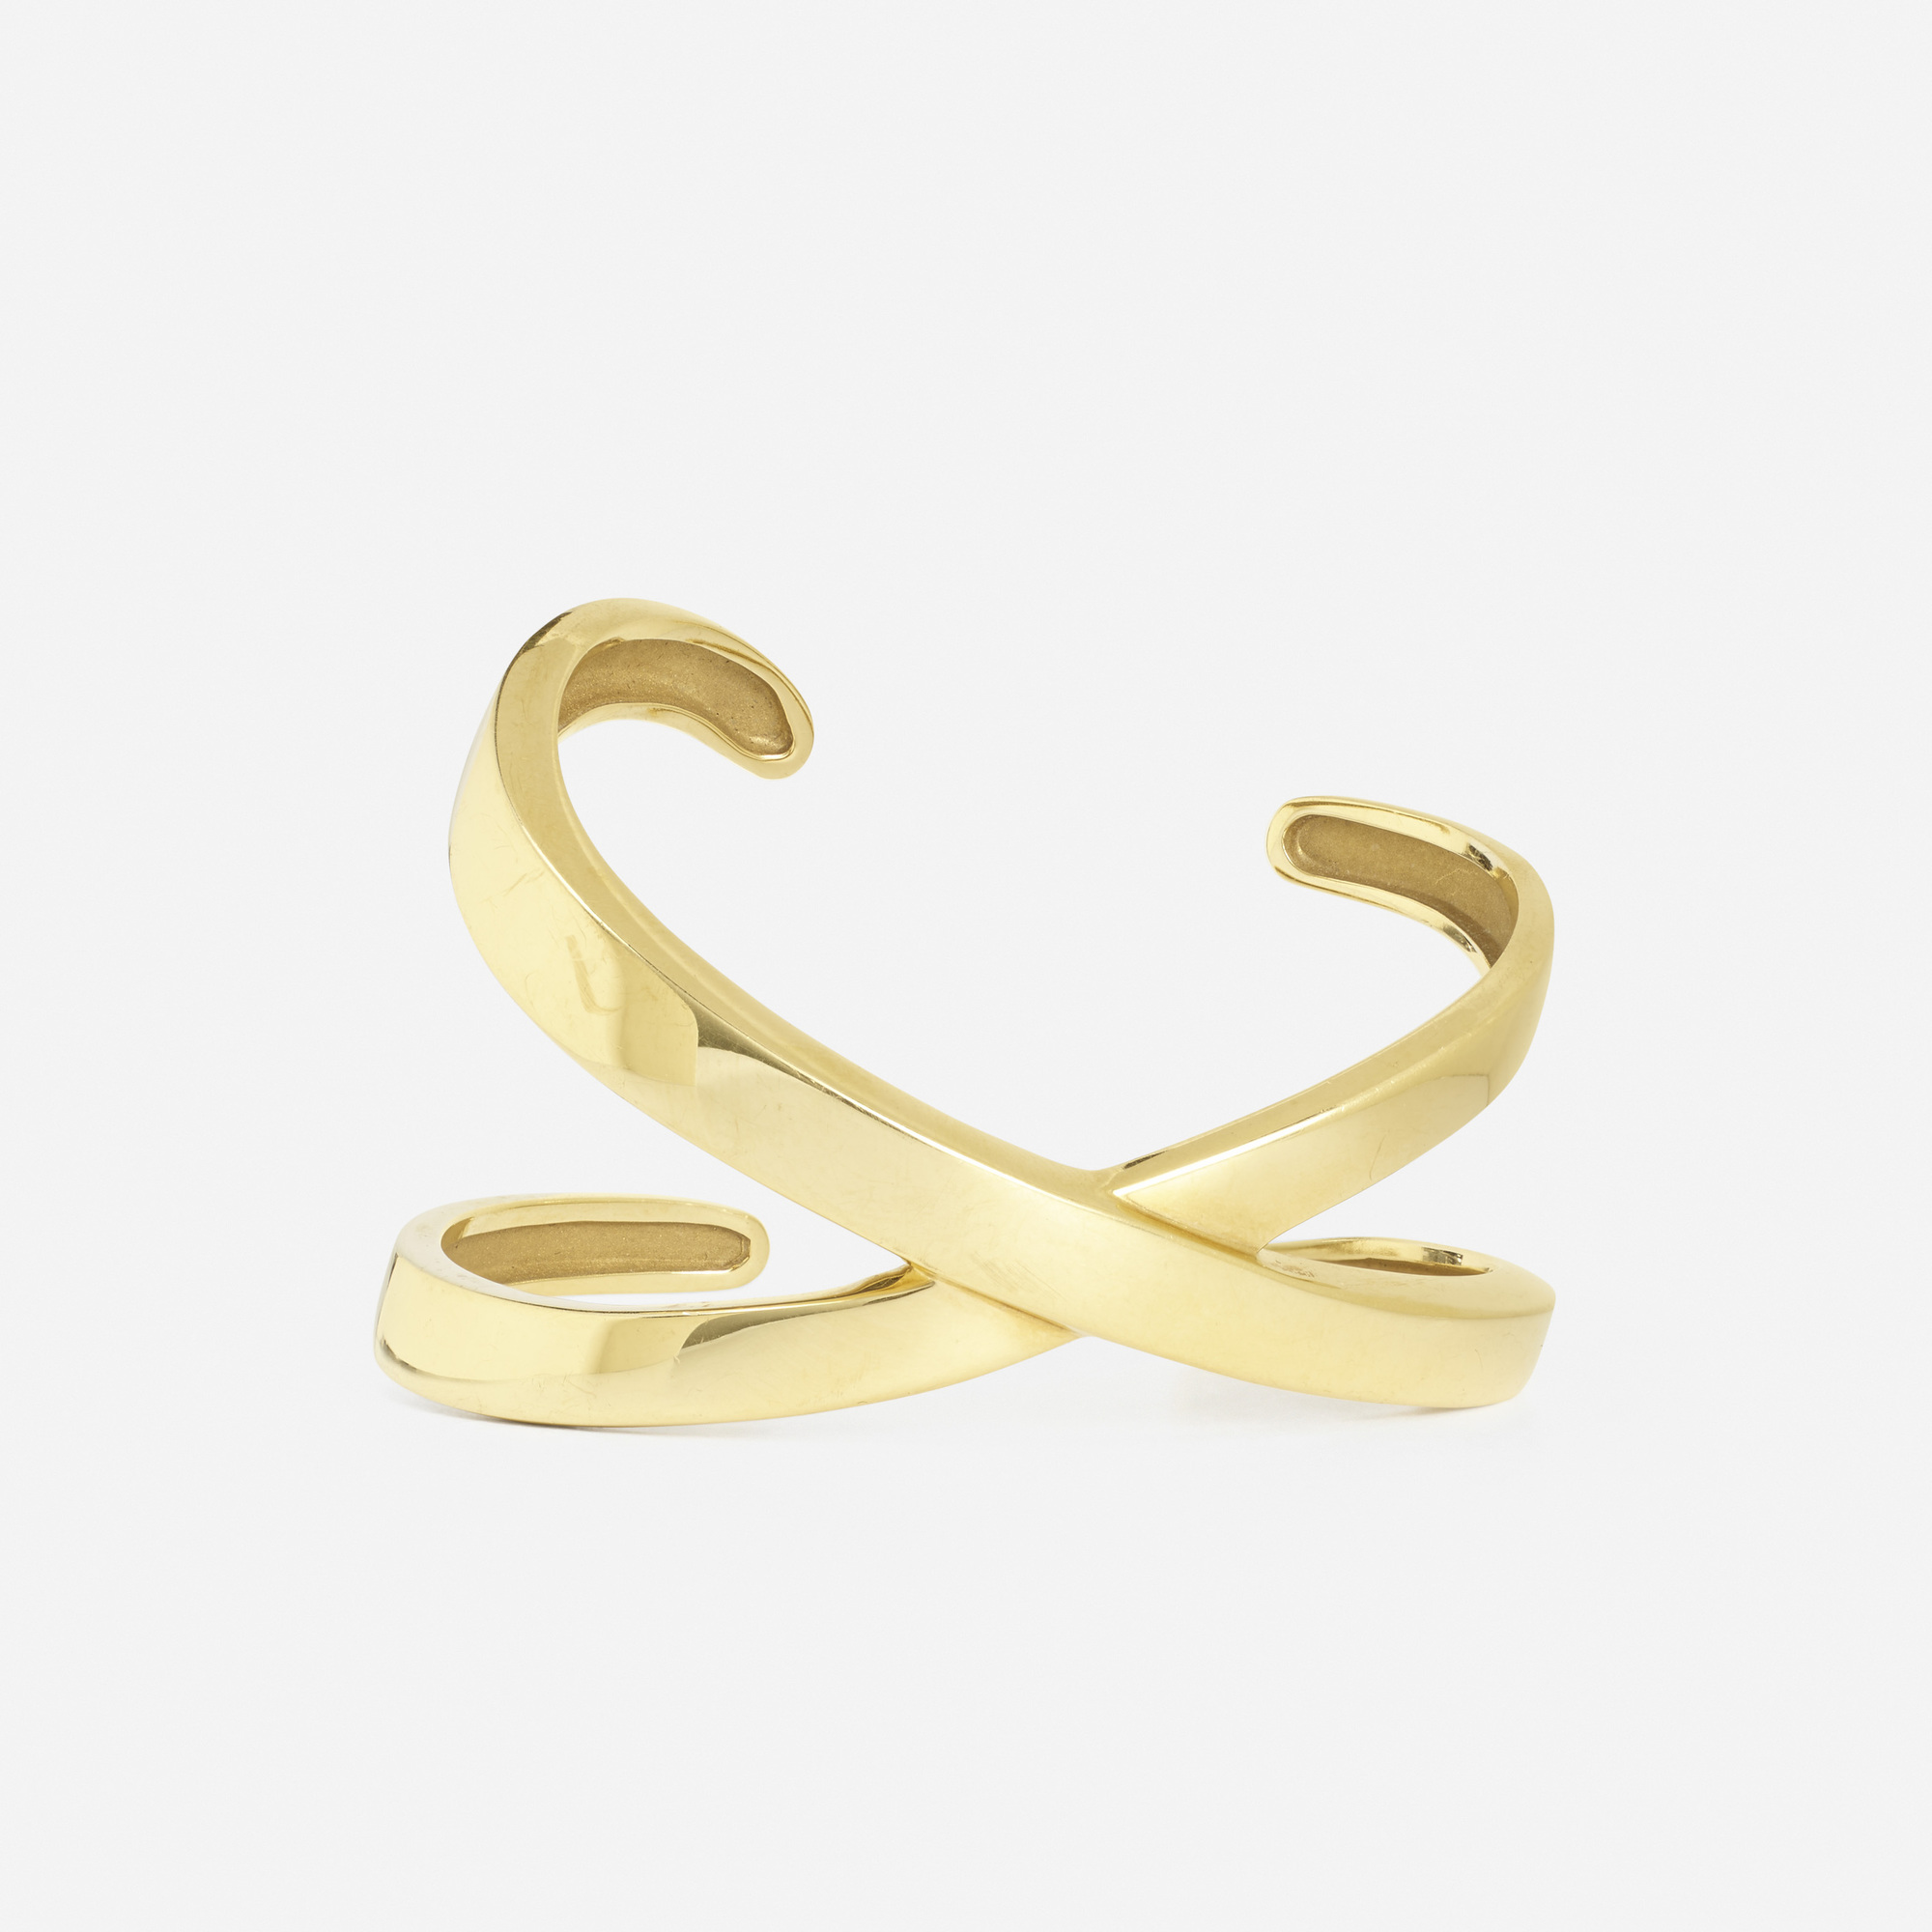 265: Paloma Picasso for Tiffany & Co. / A gold bangle from the X Collection (2 of 2)